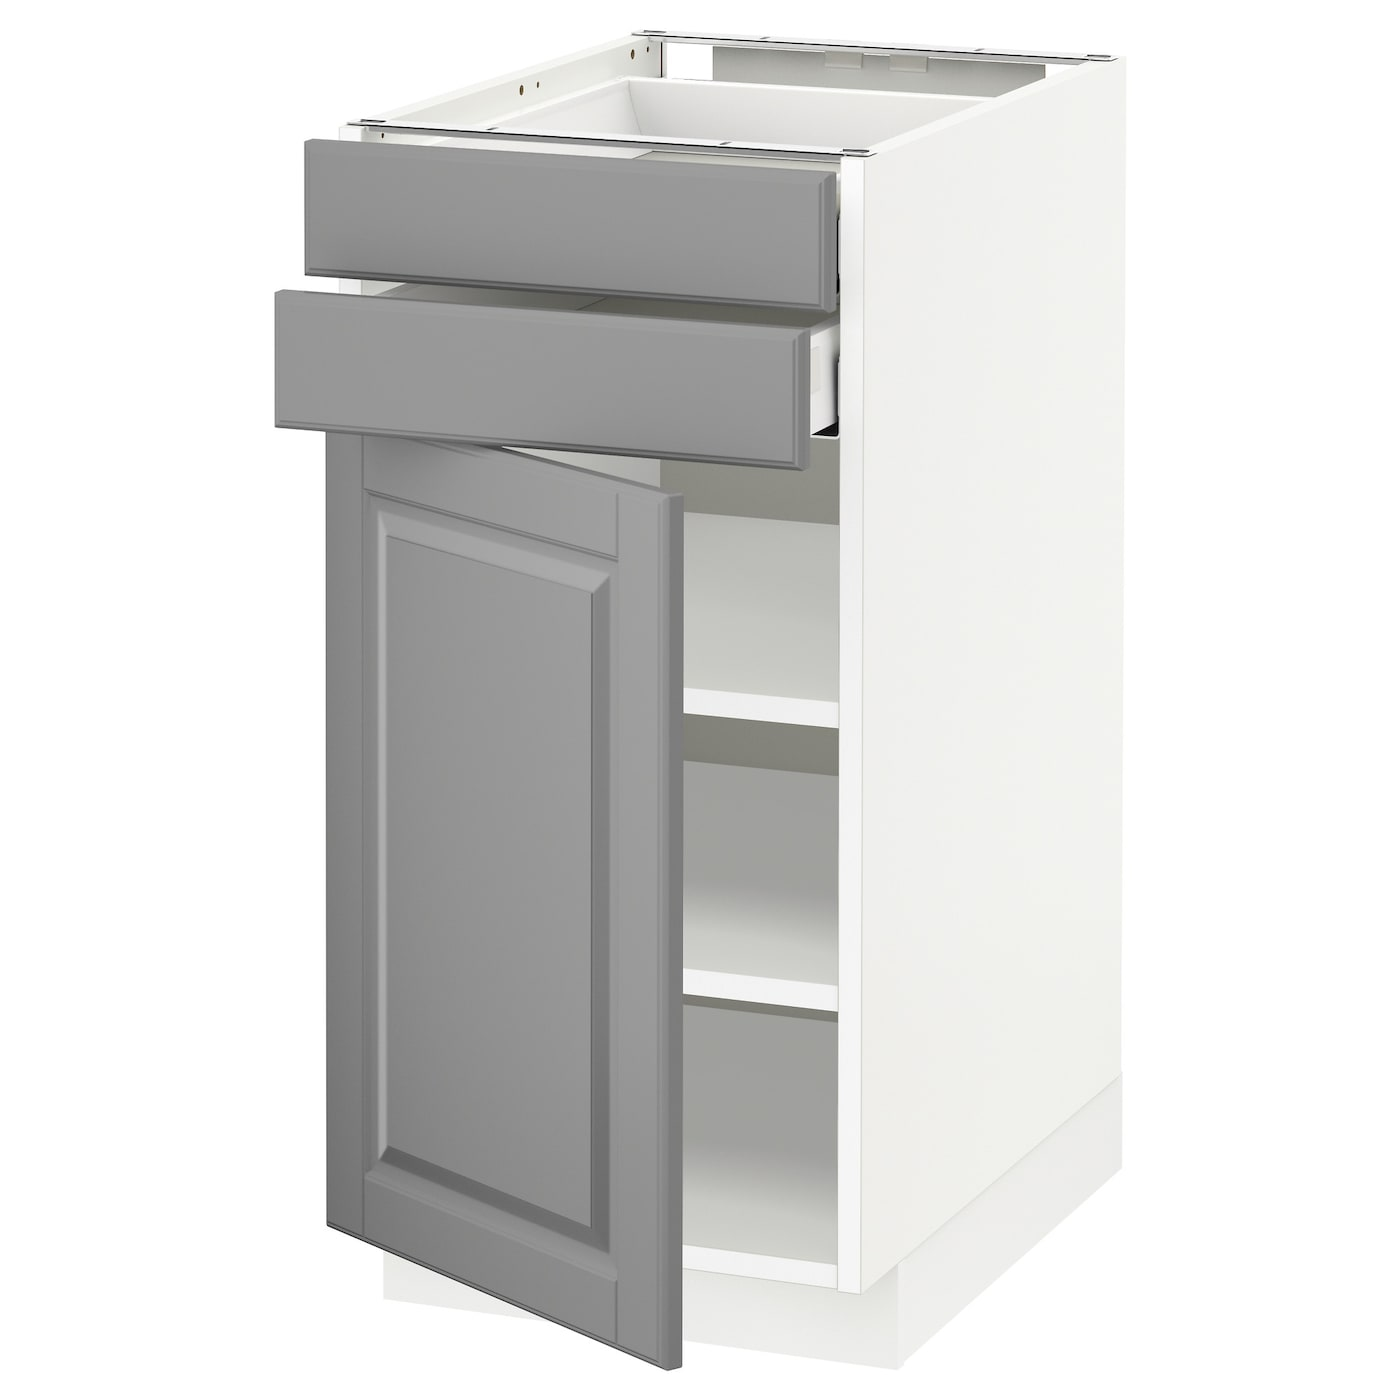 base drawer kitchen cabinets metod maximera base cabinet w door 2 drawers white bodbyn 10948